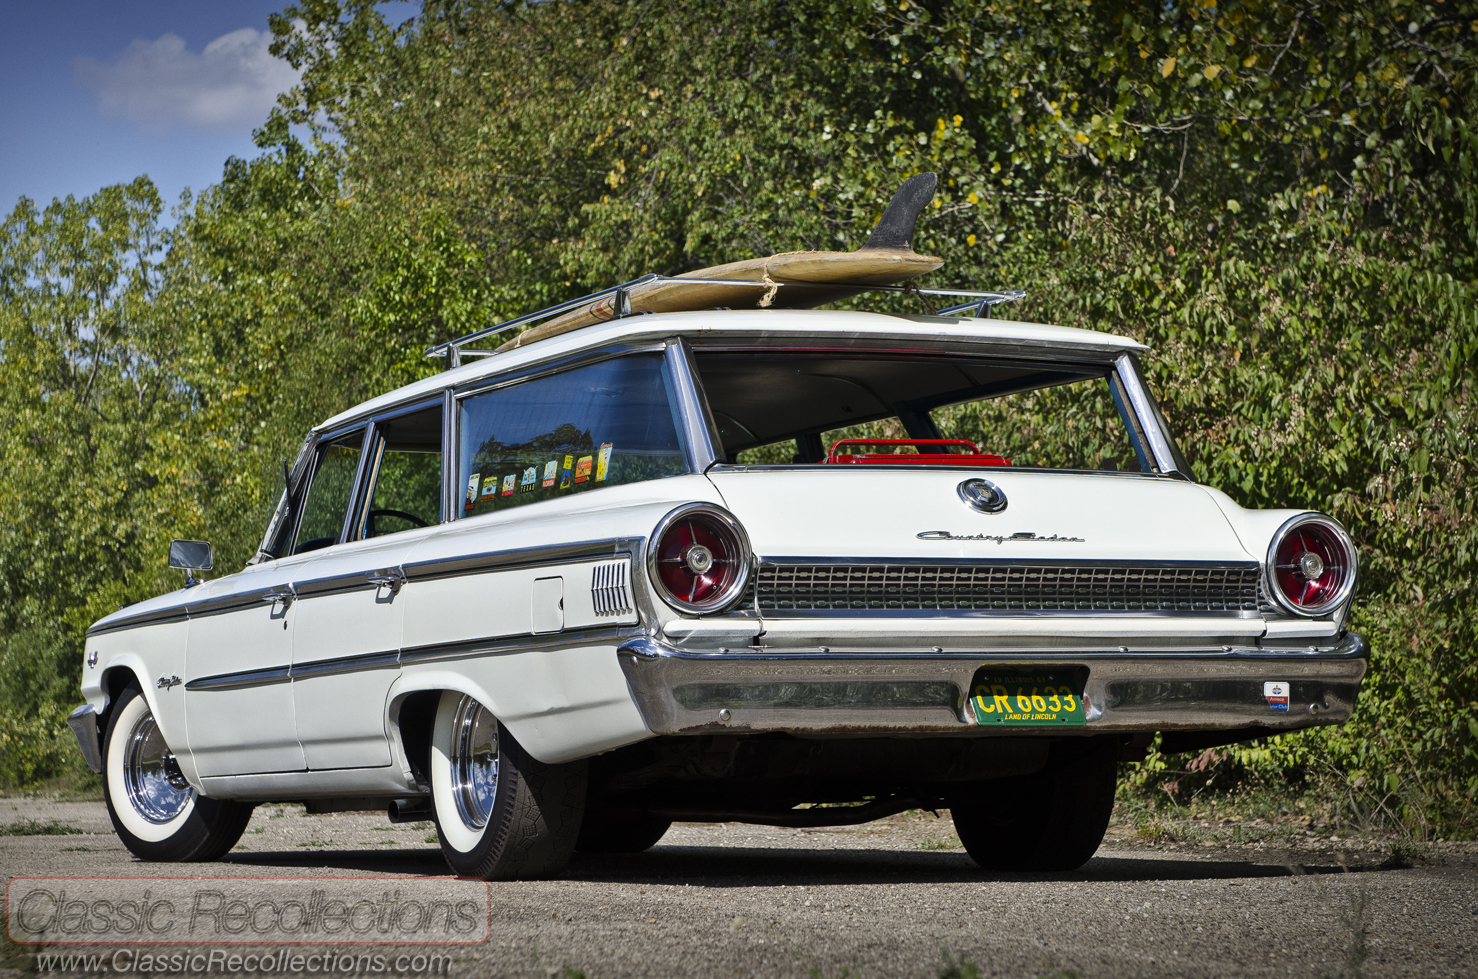 1965 Mustang Station Wagon >> FEATURE: 1963 Ford Galaxie – Classic Recollections